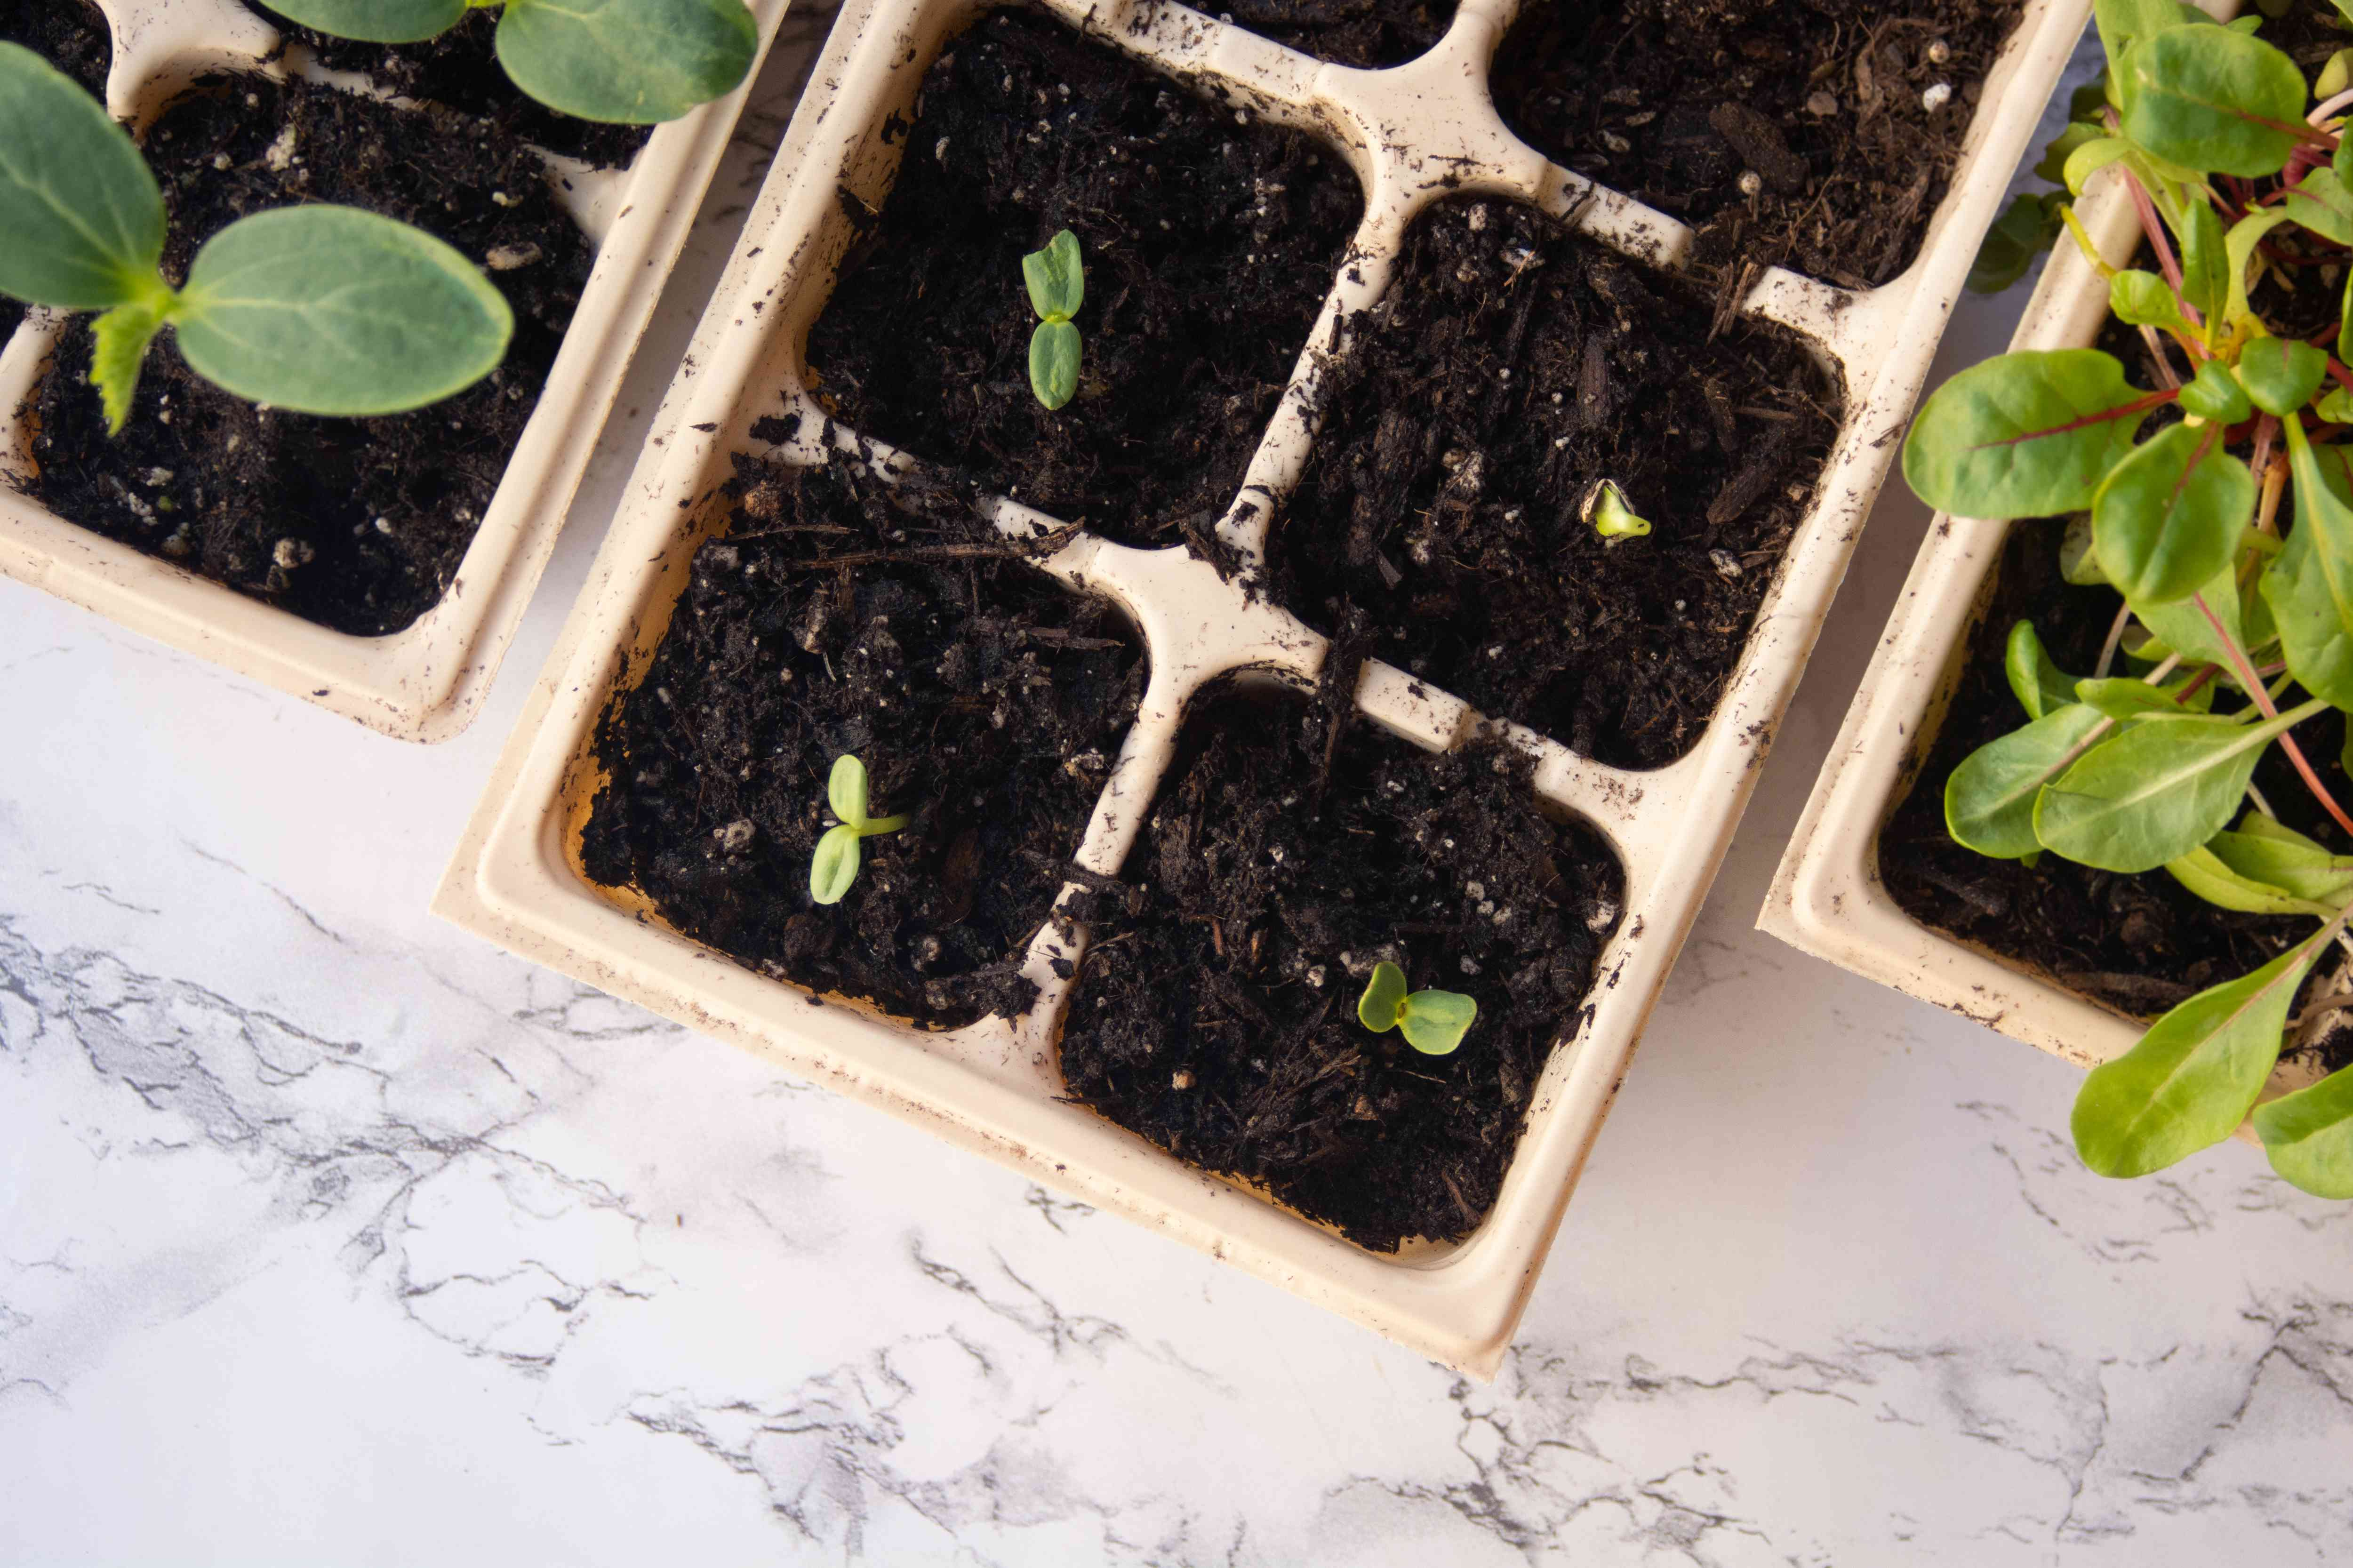 Fertilizer added to sprouts in seeding trays for growth